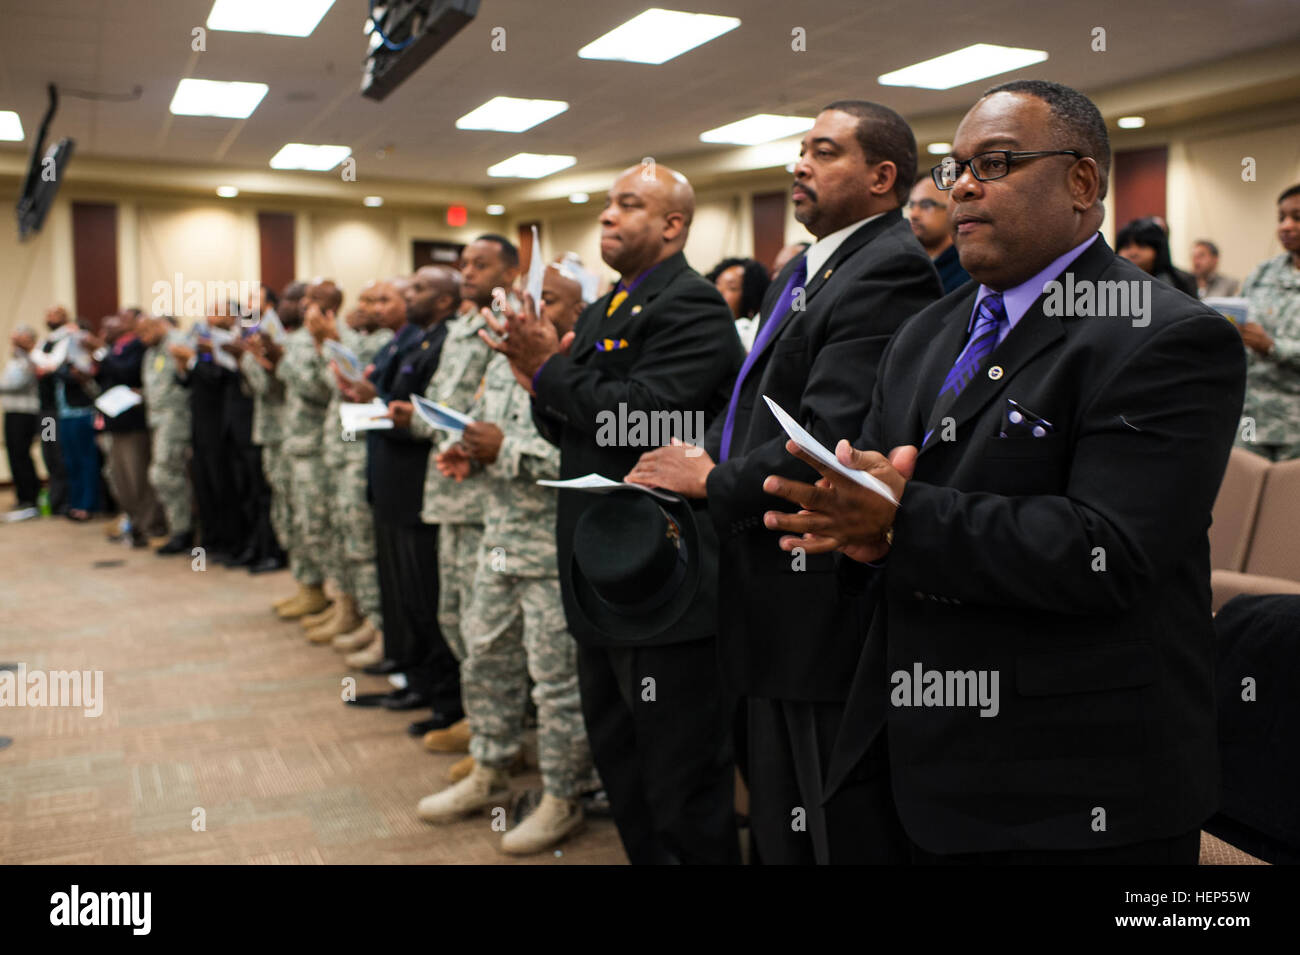 Members of the Omega Psi Phi fraternity and others applaud Andrew T. Brown during a Remembrance Service held in - Stock Image